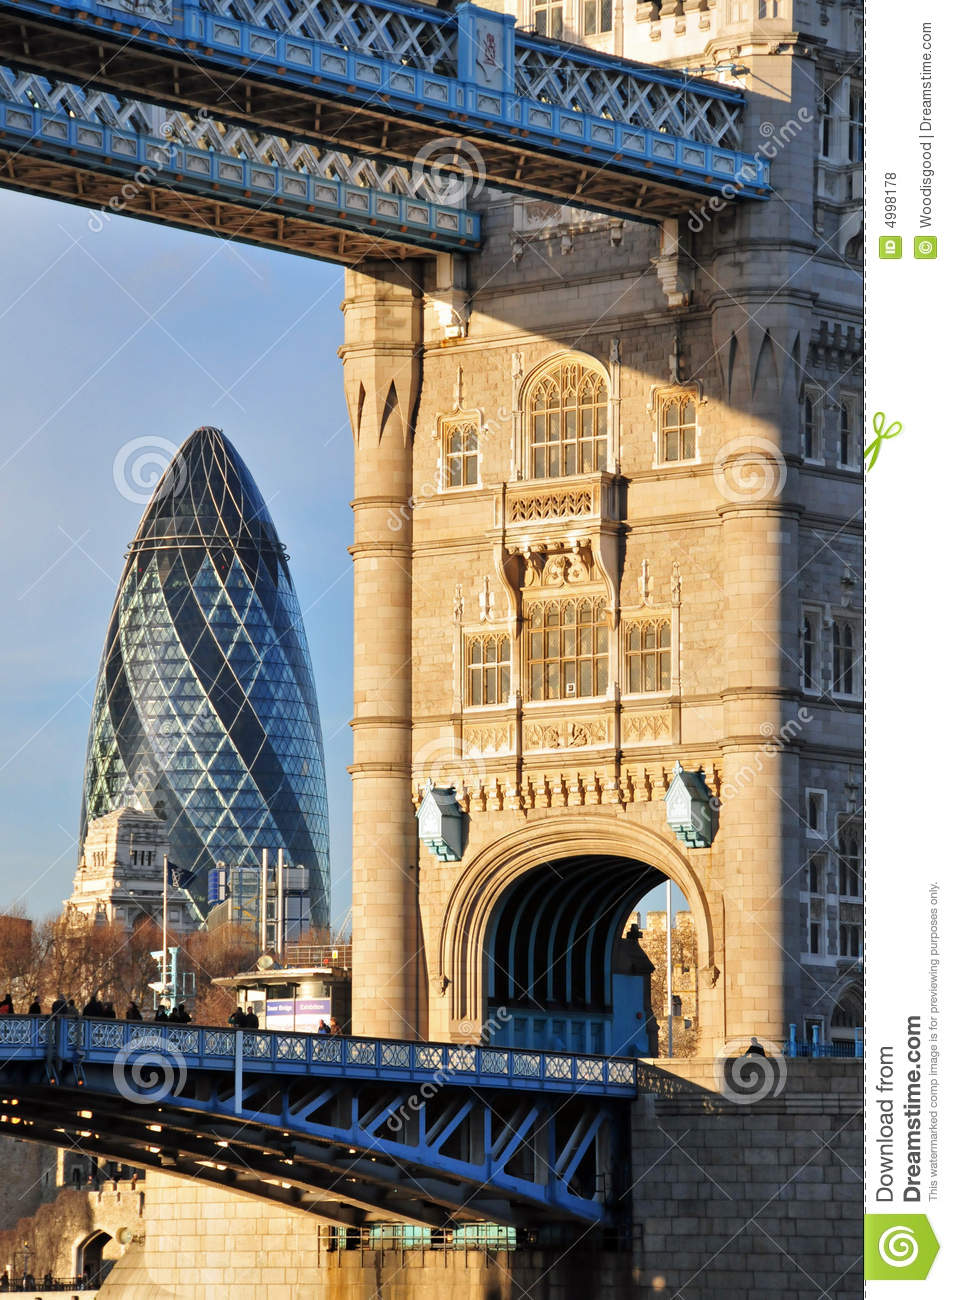 Old new london architecture royalty free stock photos for Architecte tower bridge